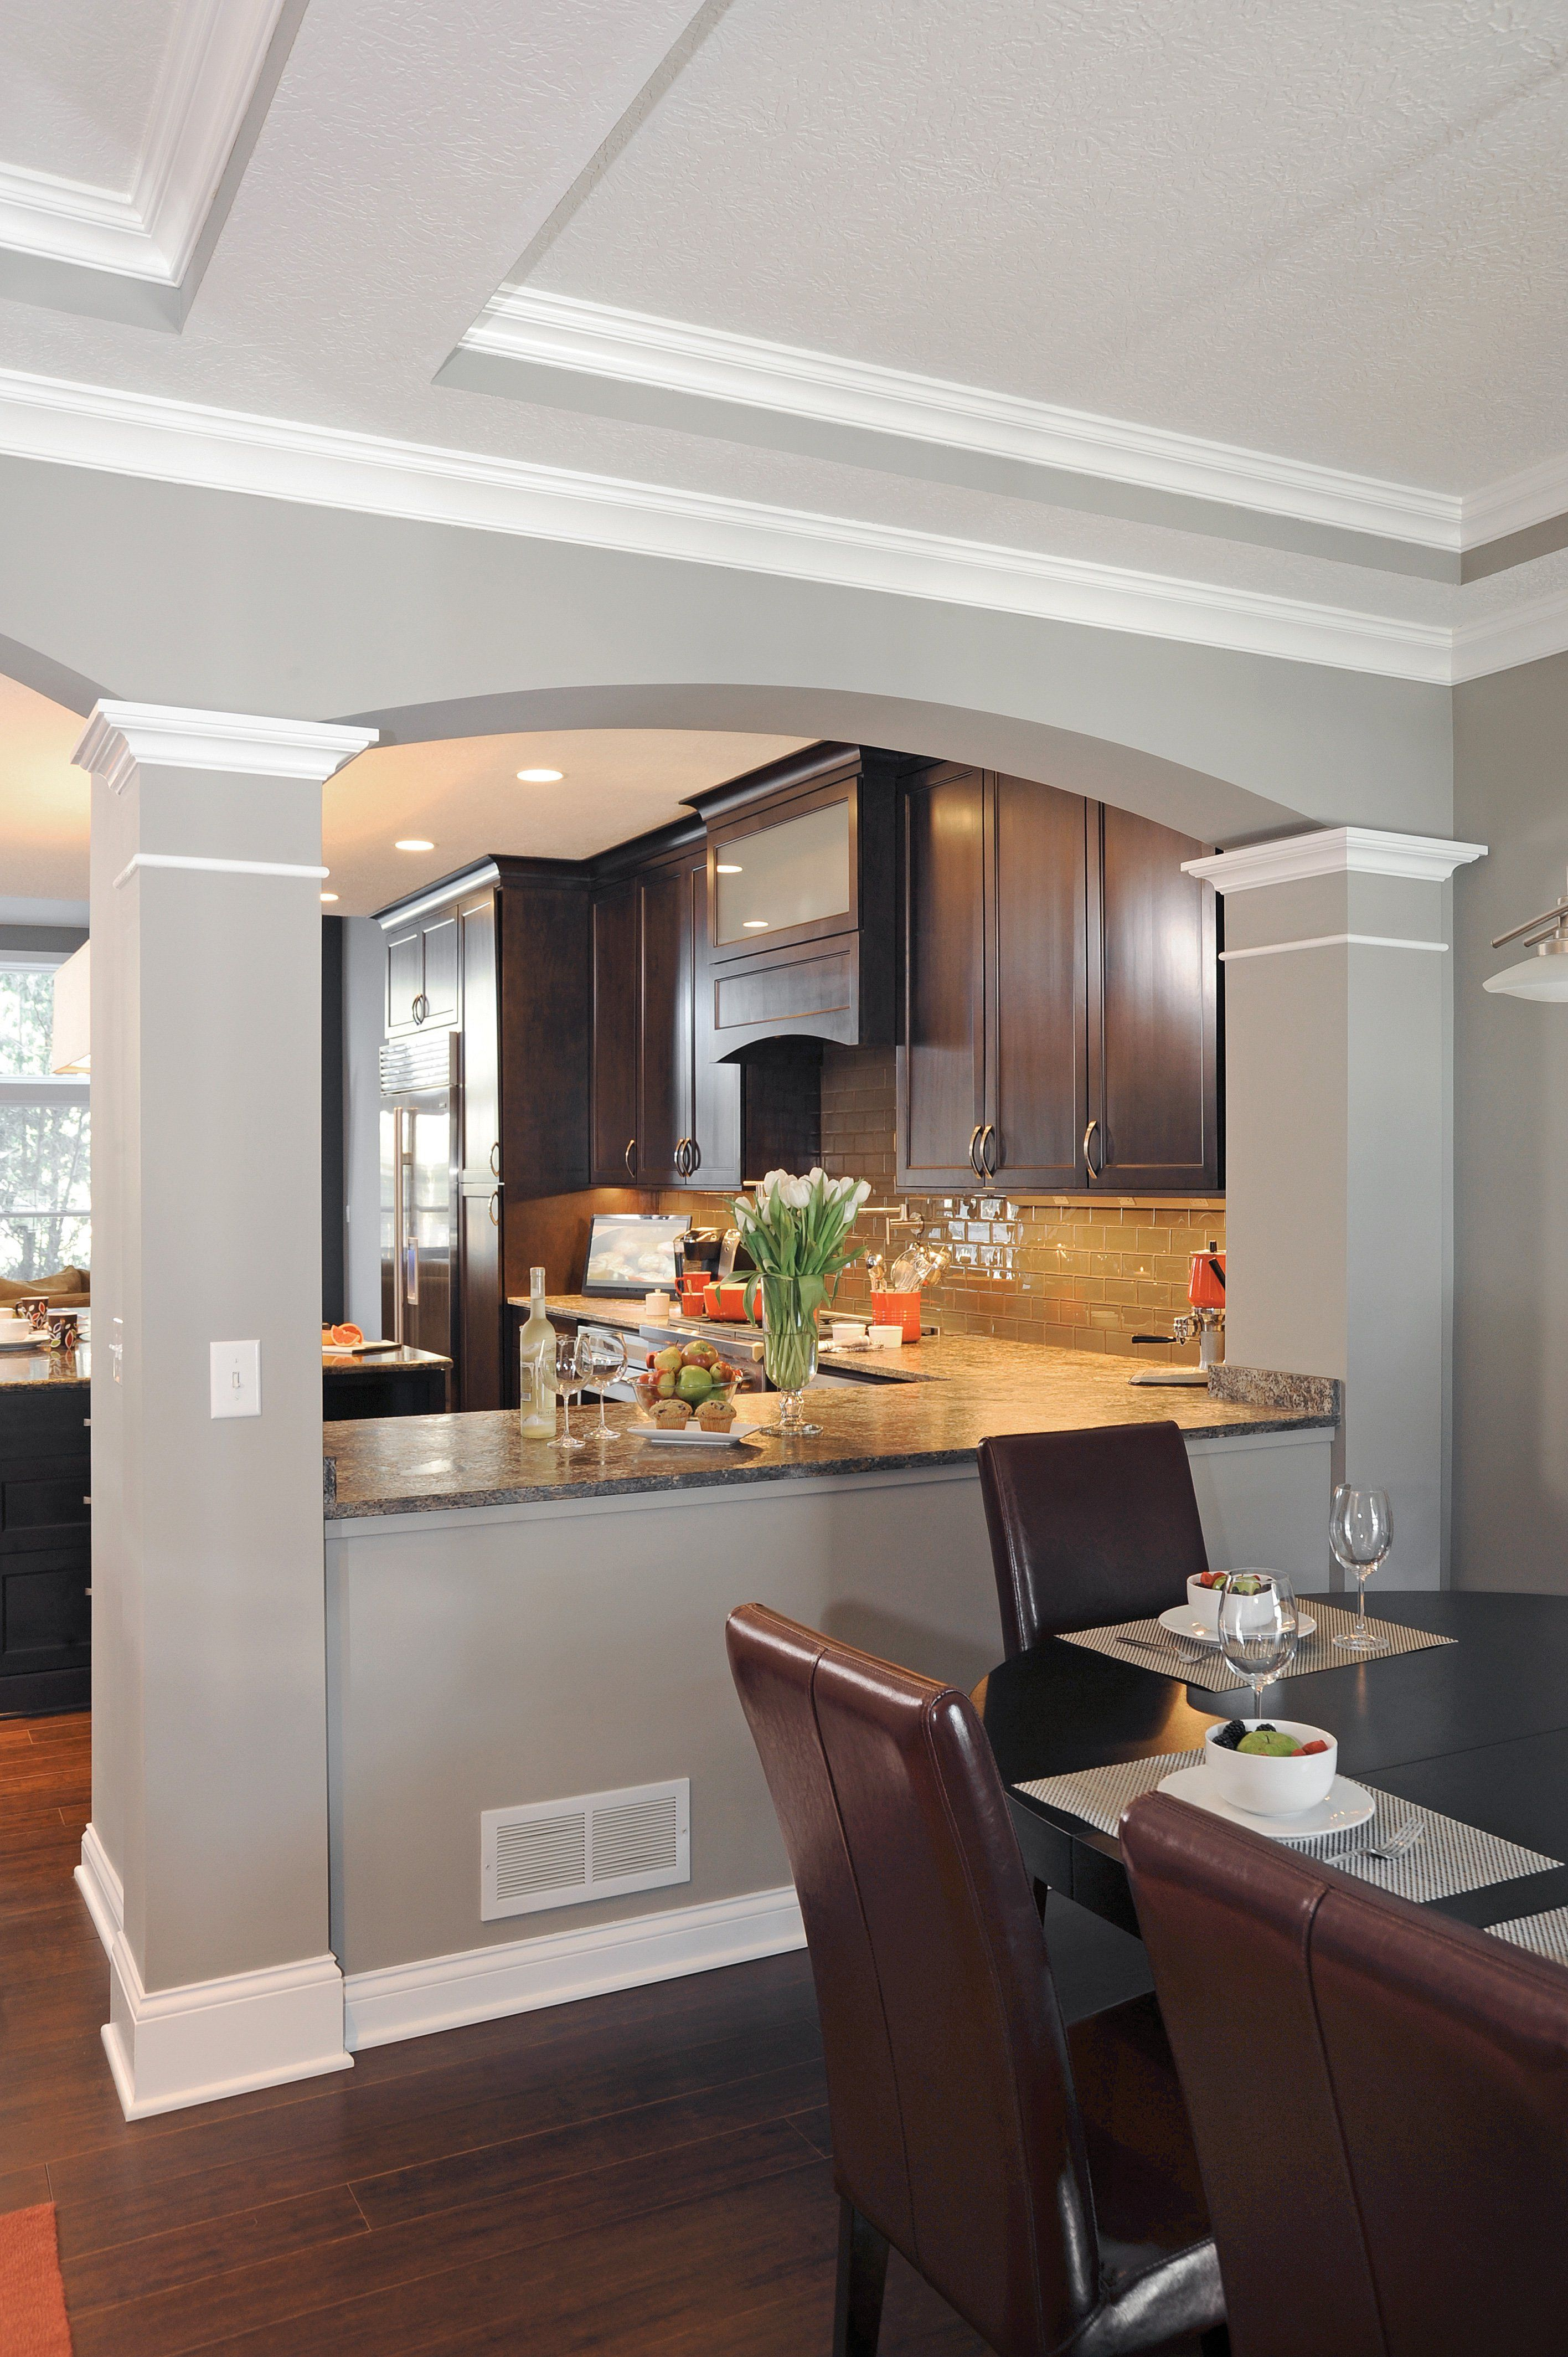 Small Changes Make For A Big Impact Kitchen Design Home